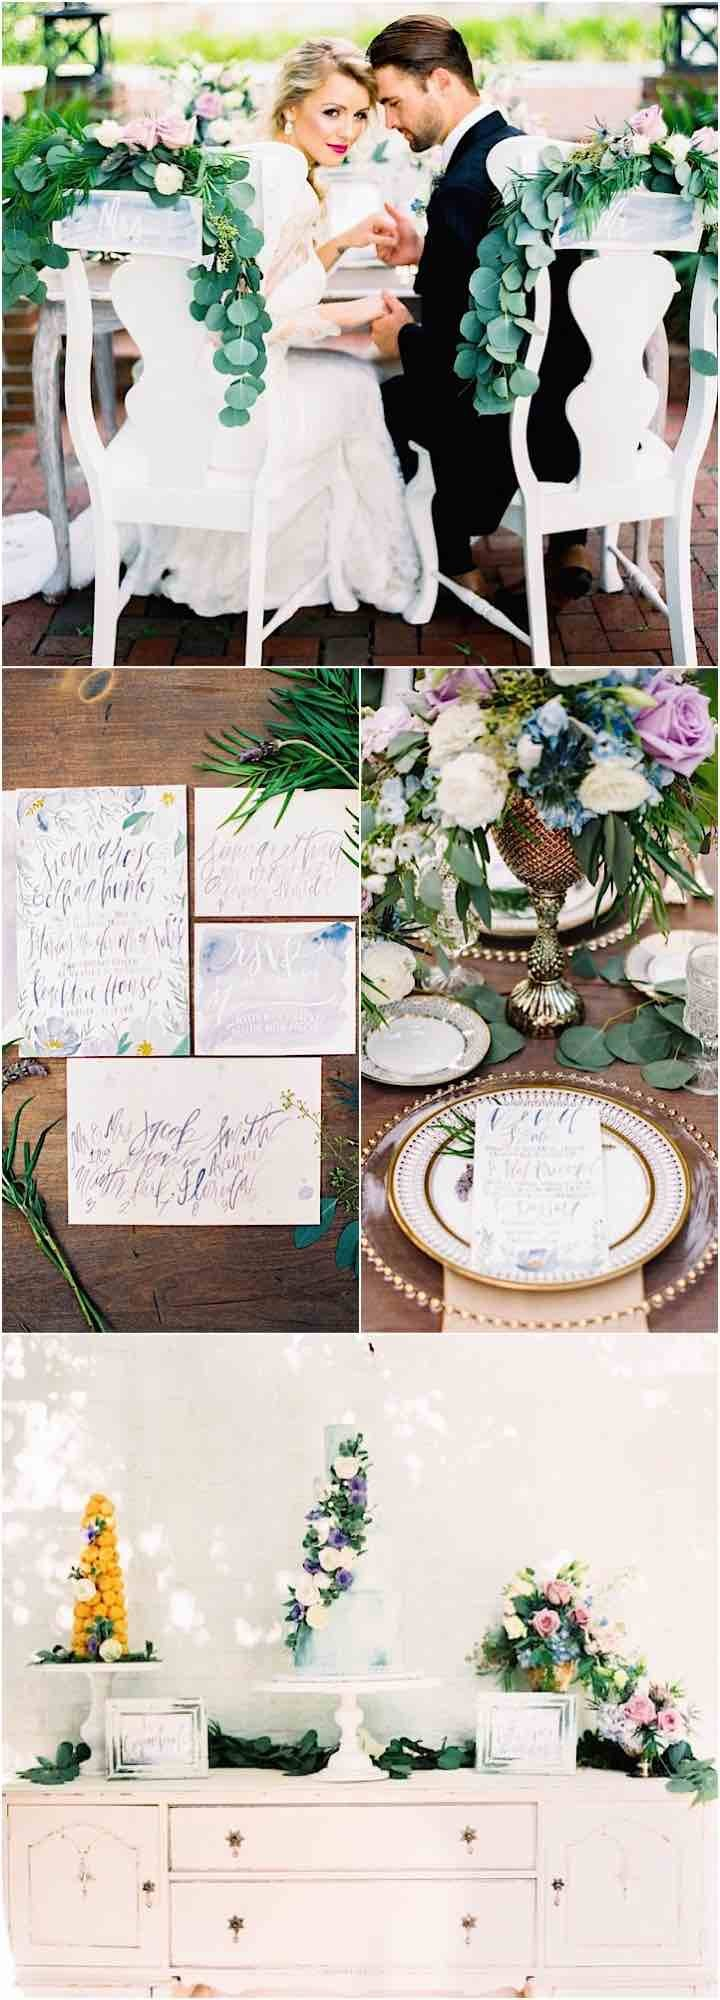 french-wedding-collage6-122715mc-720x956